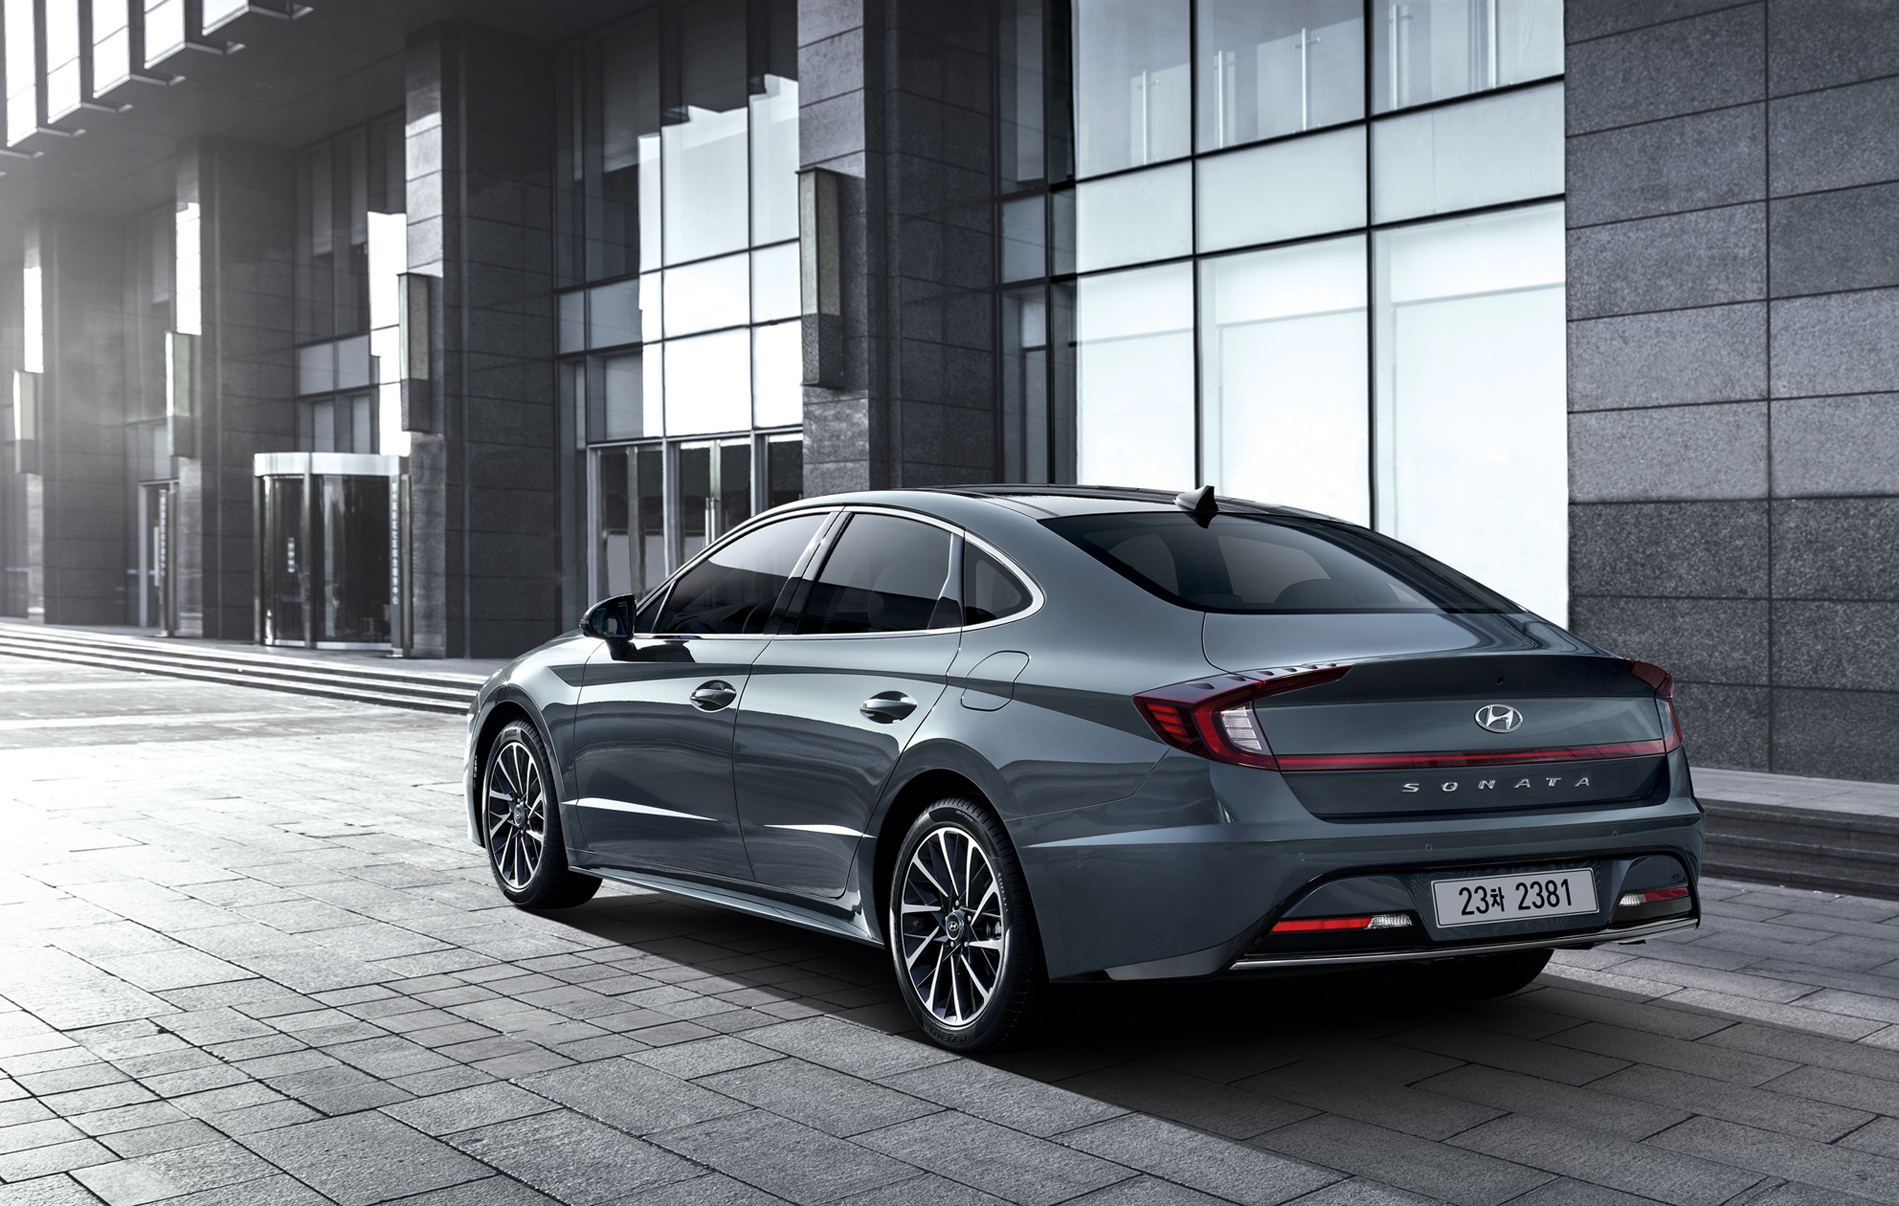 Hyundai Motor Shares First Glimpse of All-New Sonata_Additional Press Photo2.jpg